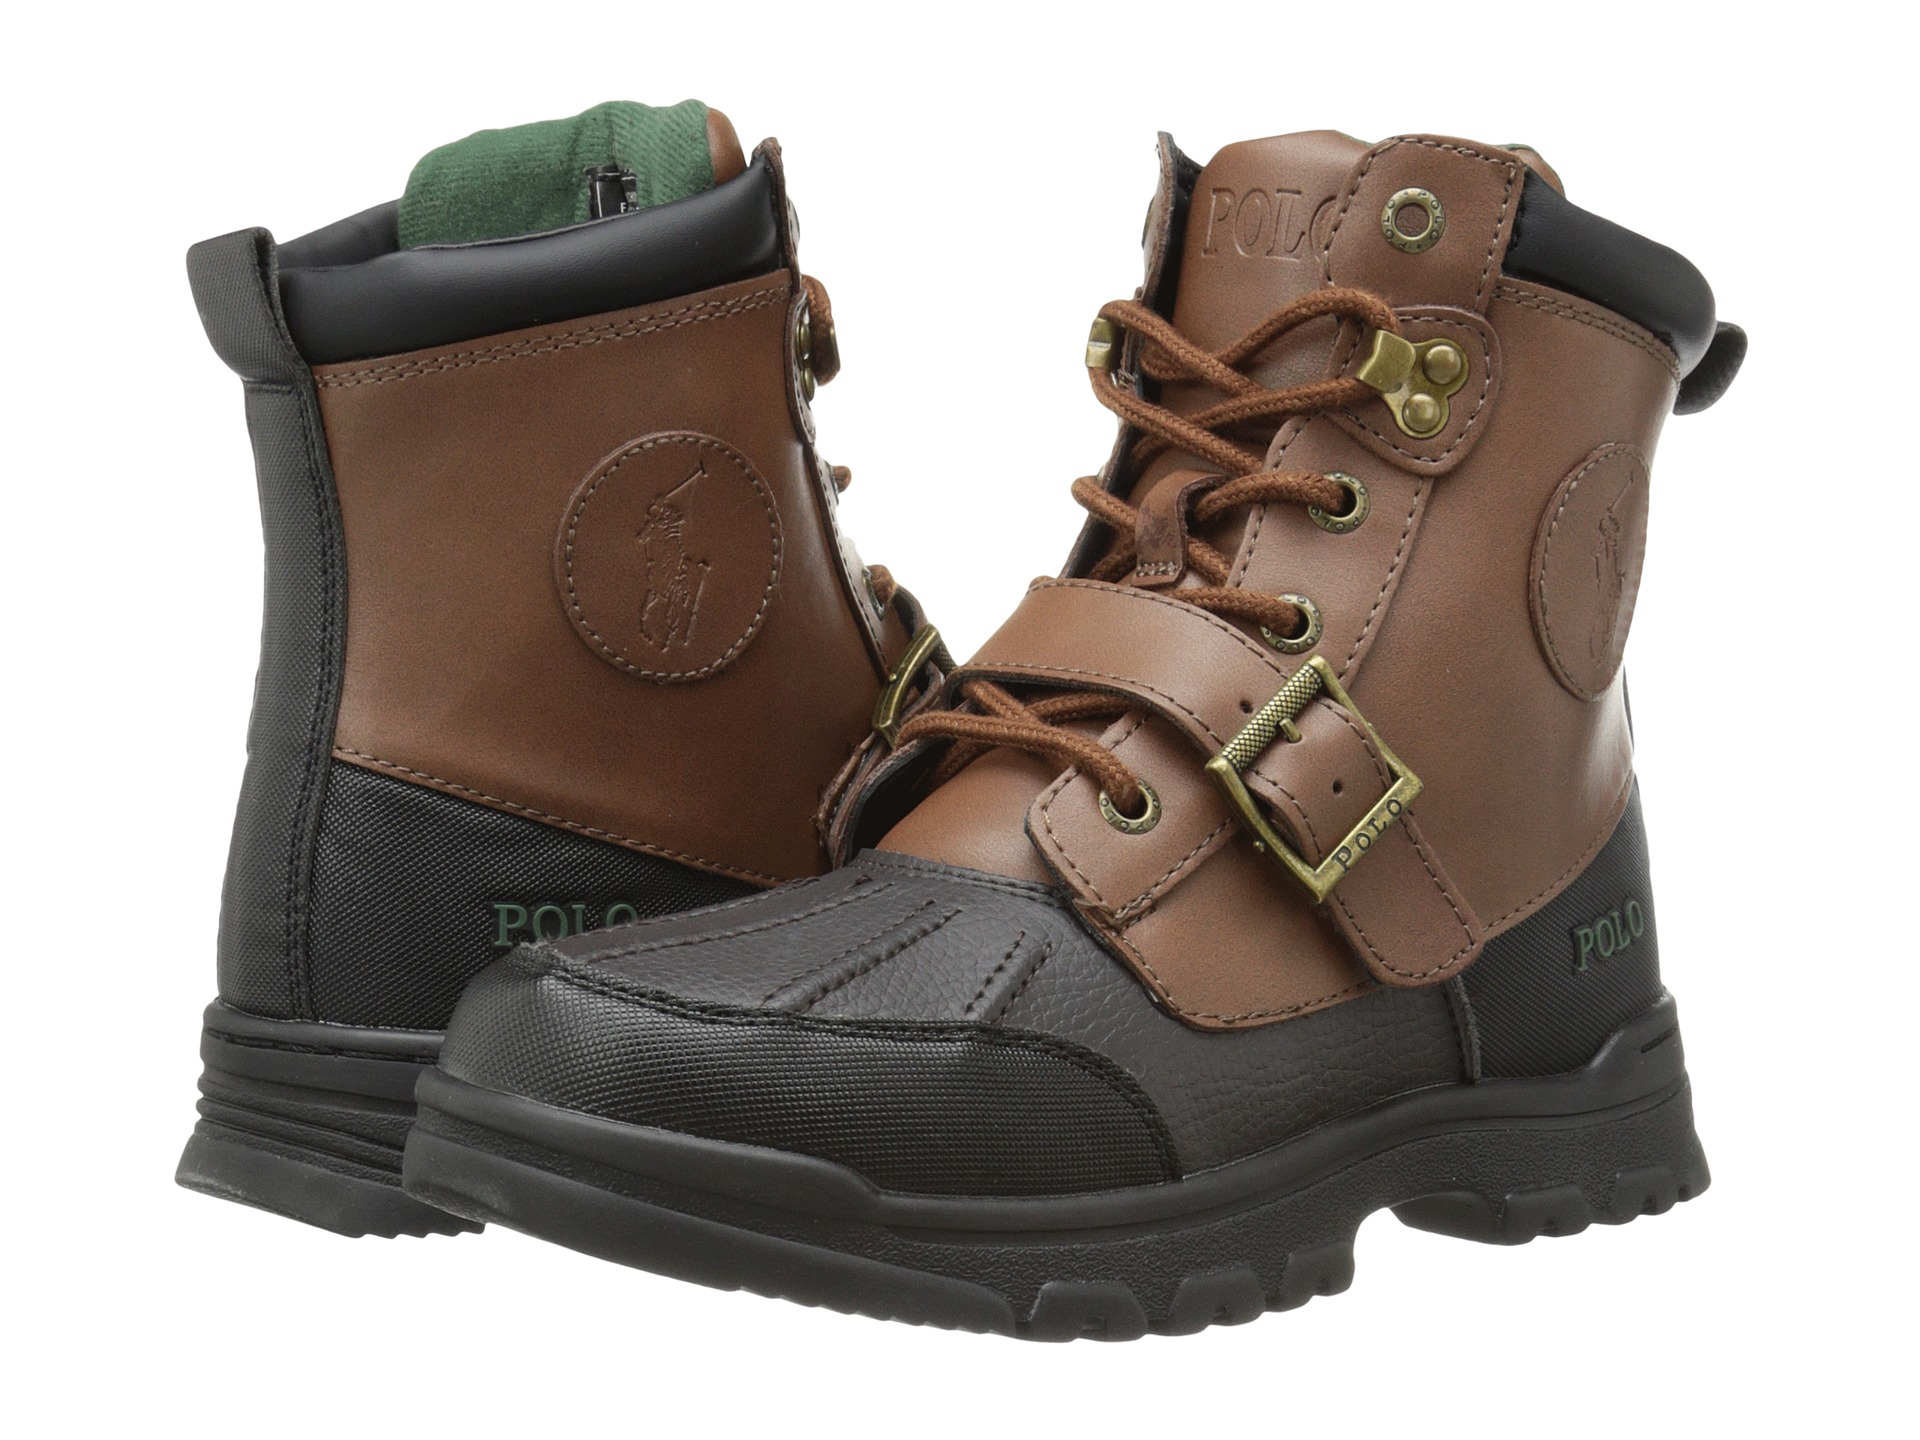 Free shipping BOTH ways on polo boots big kids, from our vast selection of styles. Fast delivery, and 24/7/ real-person service with a smile. Click or call